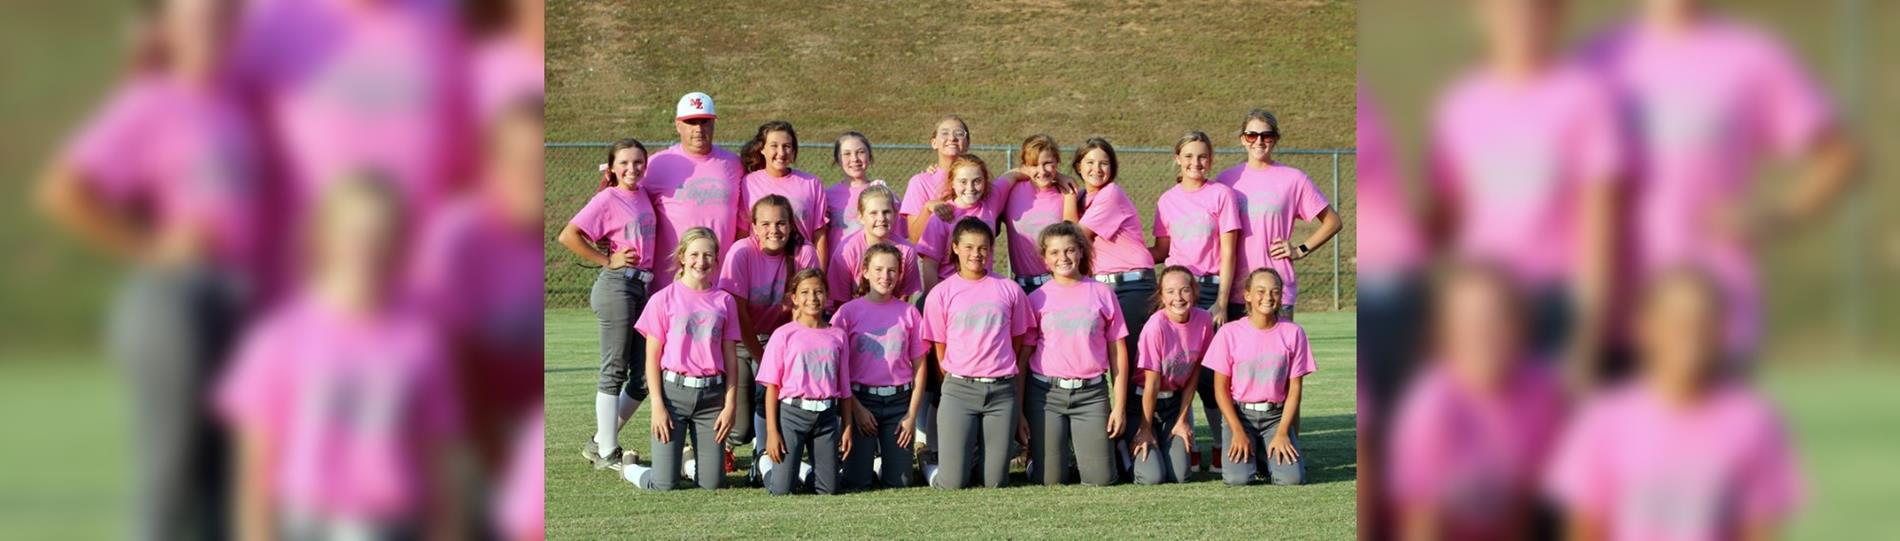 Softball Breast Cancer Game